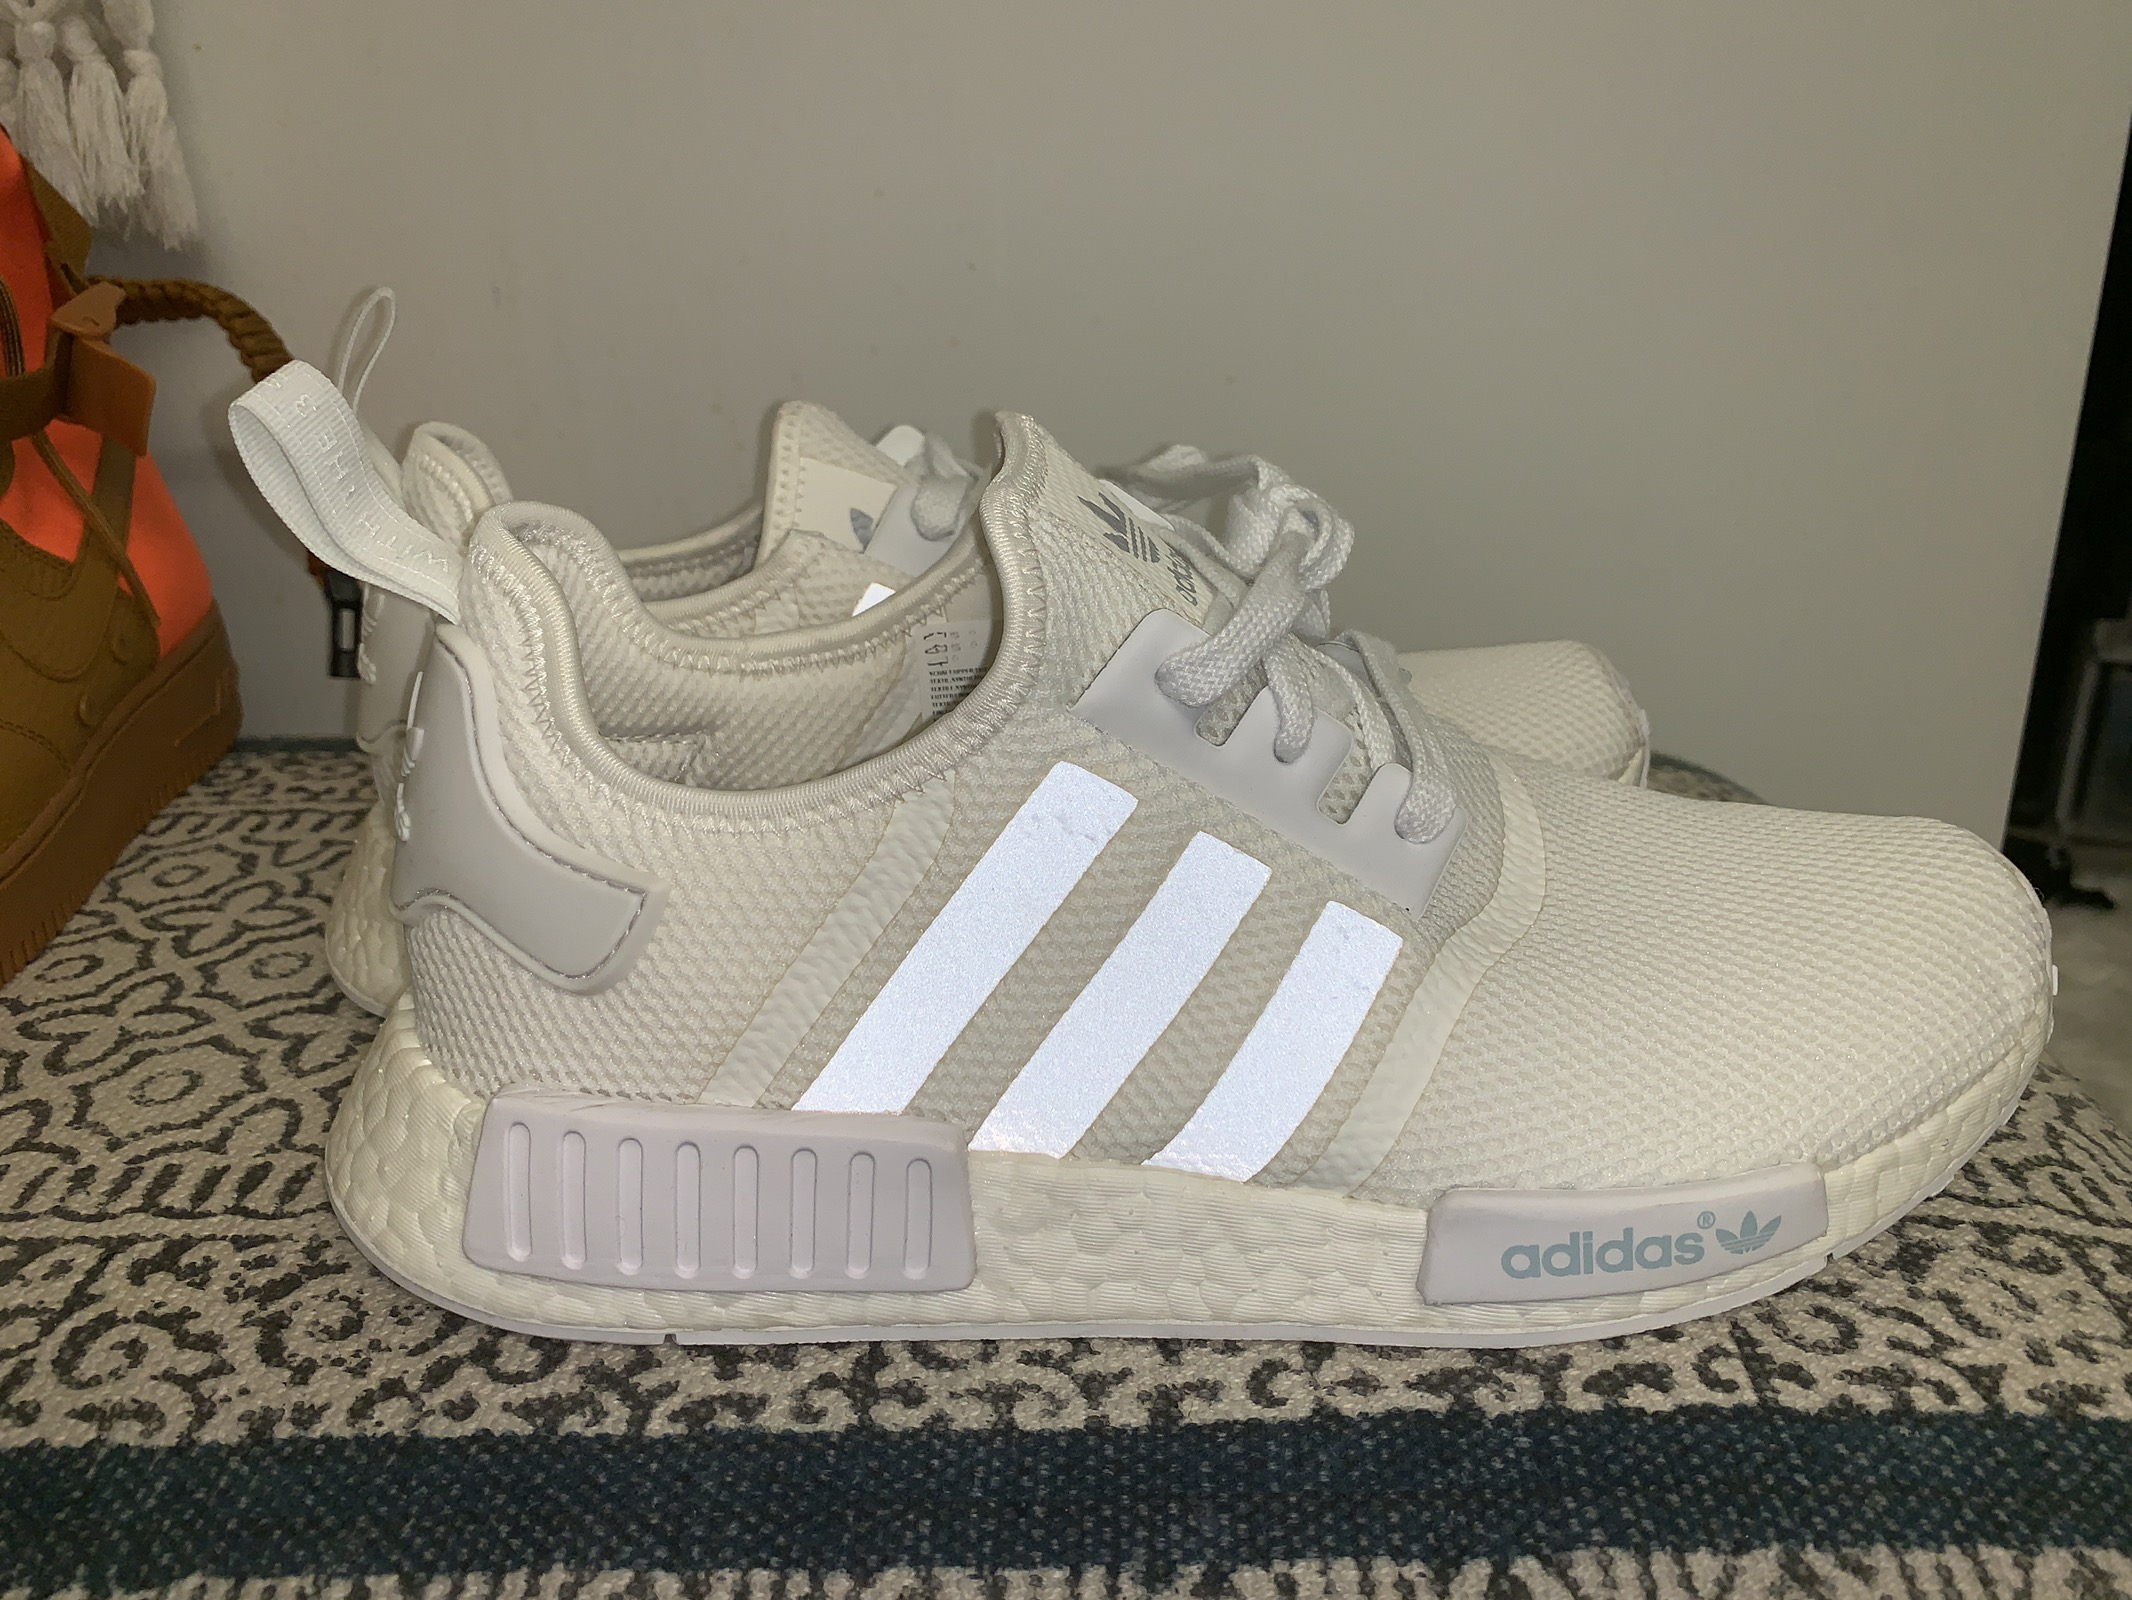 Adidas Nmd R1 Triple White Reflective Stripes Grailed